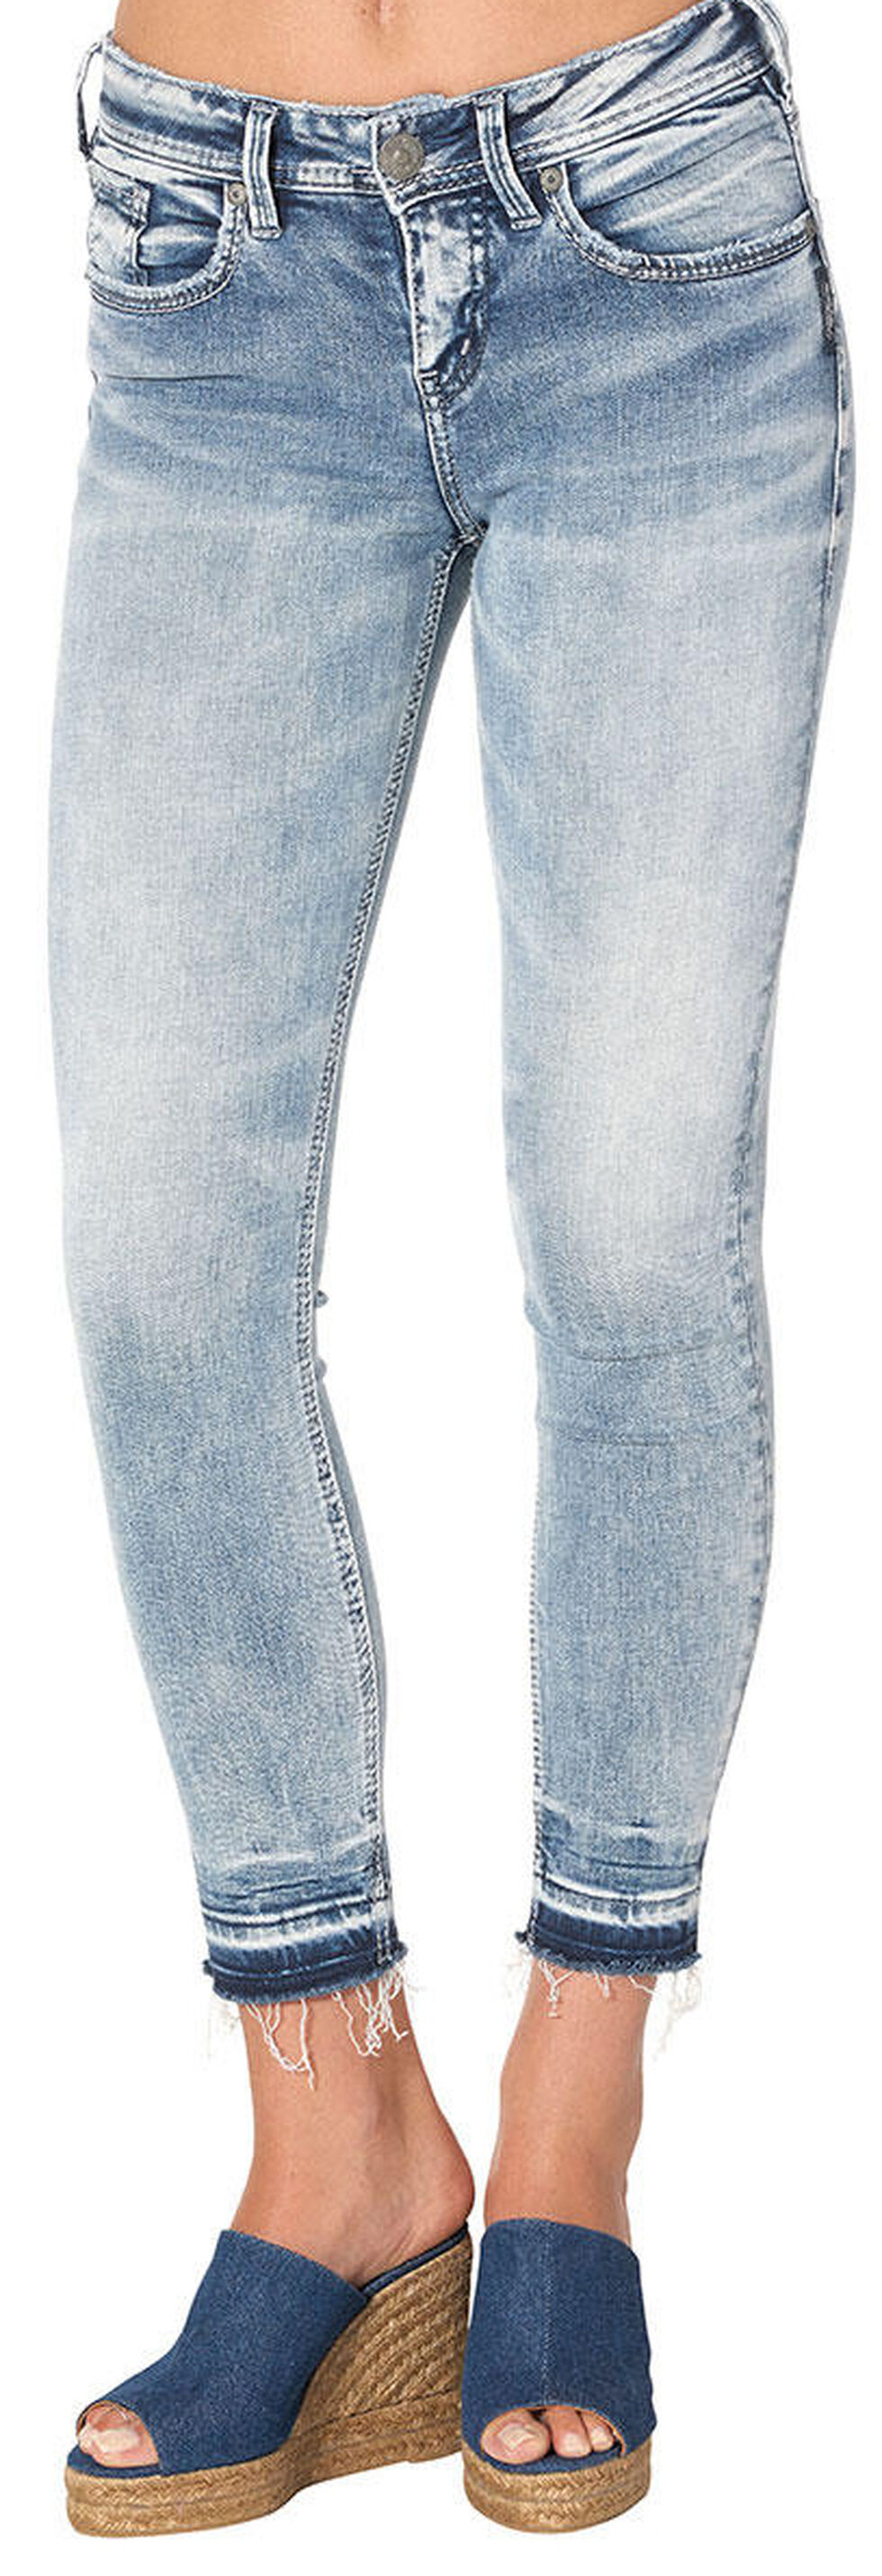 Silver Women's Avery Light Wash Ankle Skinny Jeans - Plus Size, Indigo, hi-res